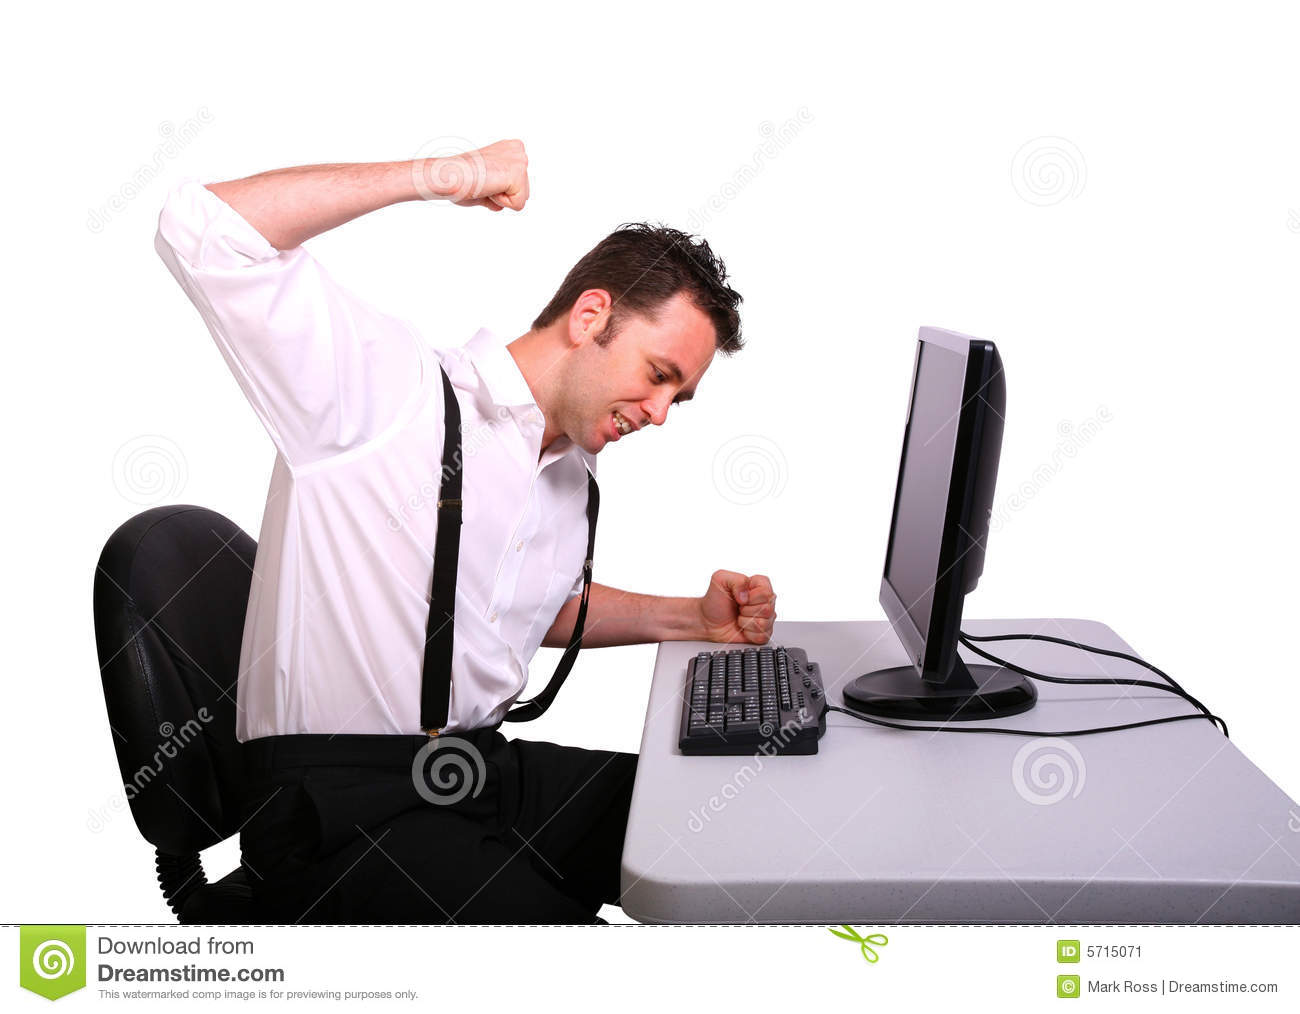 Frustrated Computer Operator Stock Image - Image: 5715071